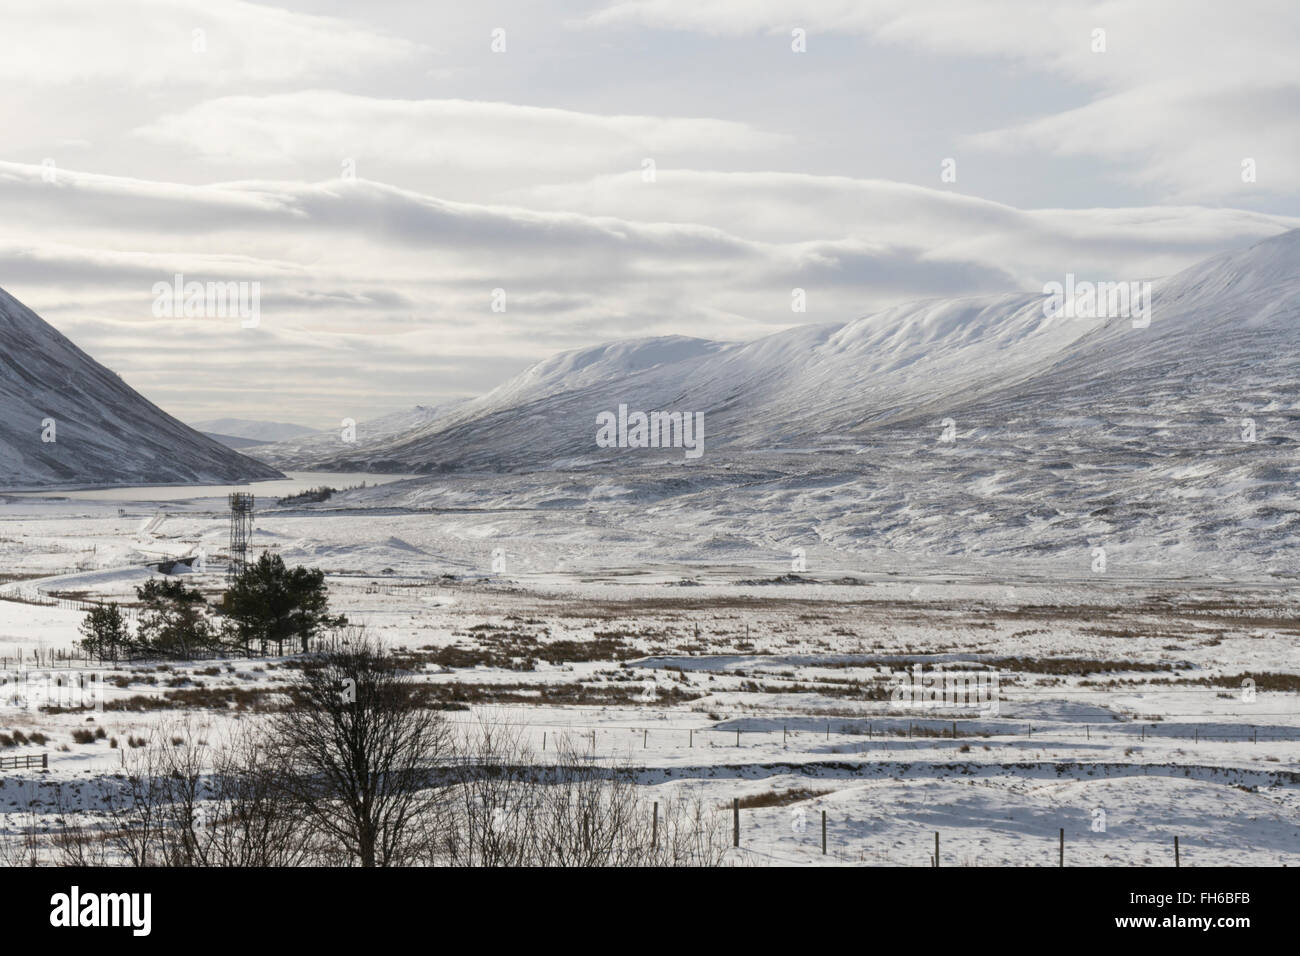 Scottish Highlands winter landscape looking southwest to Meall Doire and Ceann Dubh from Dalnaspidal,Perthshire,Scotland,UK, - Stock Image